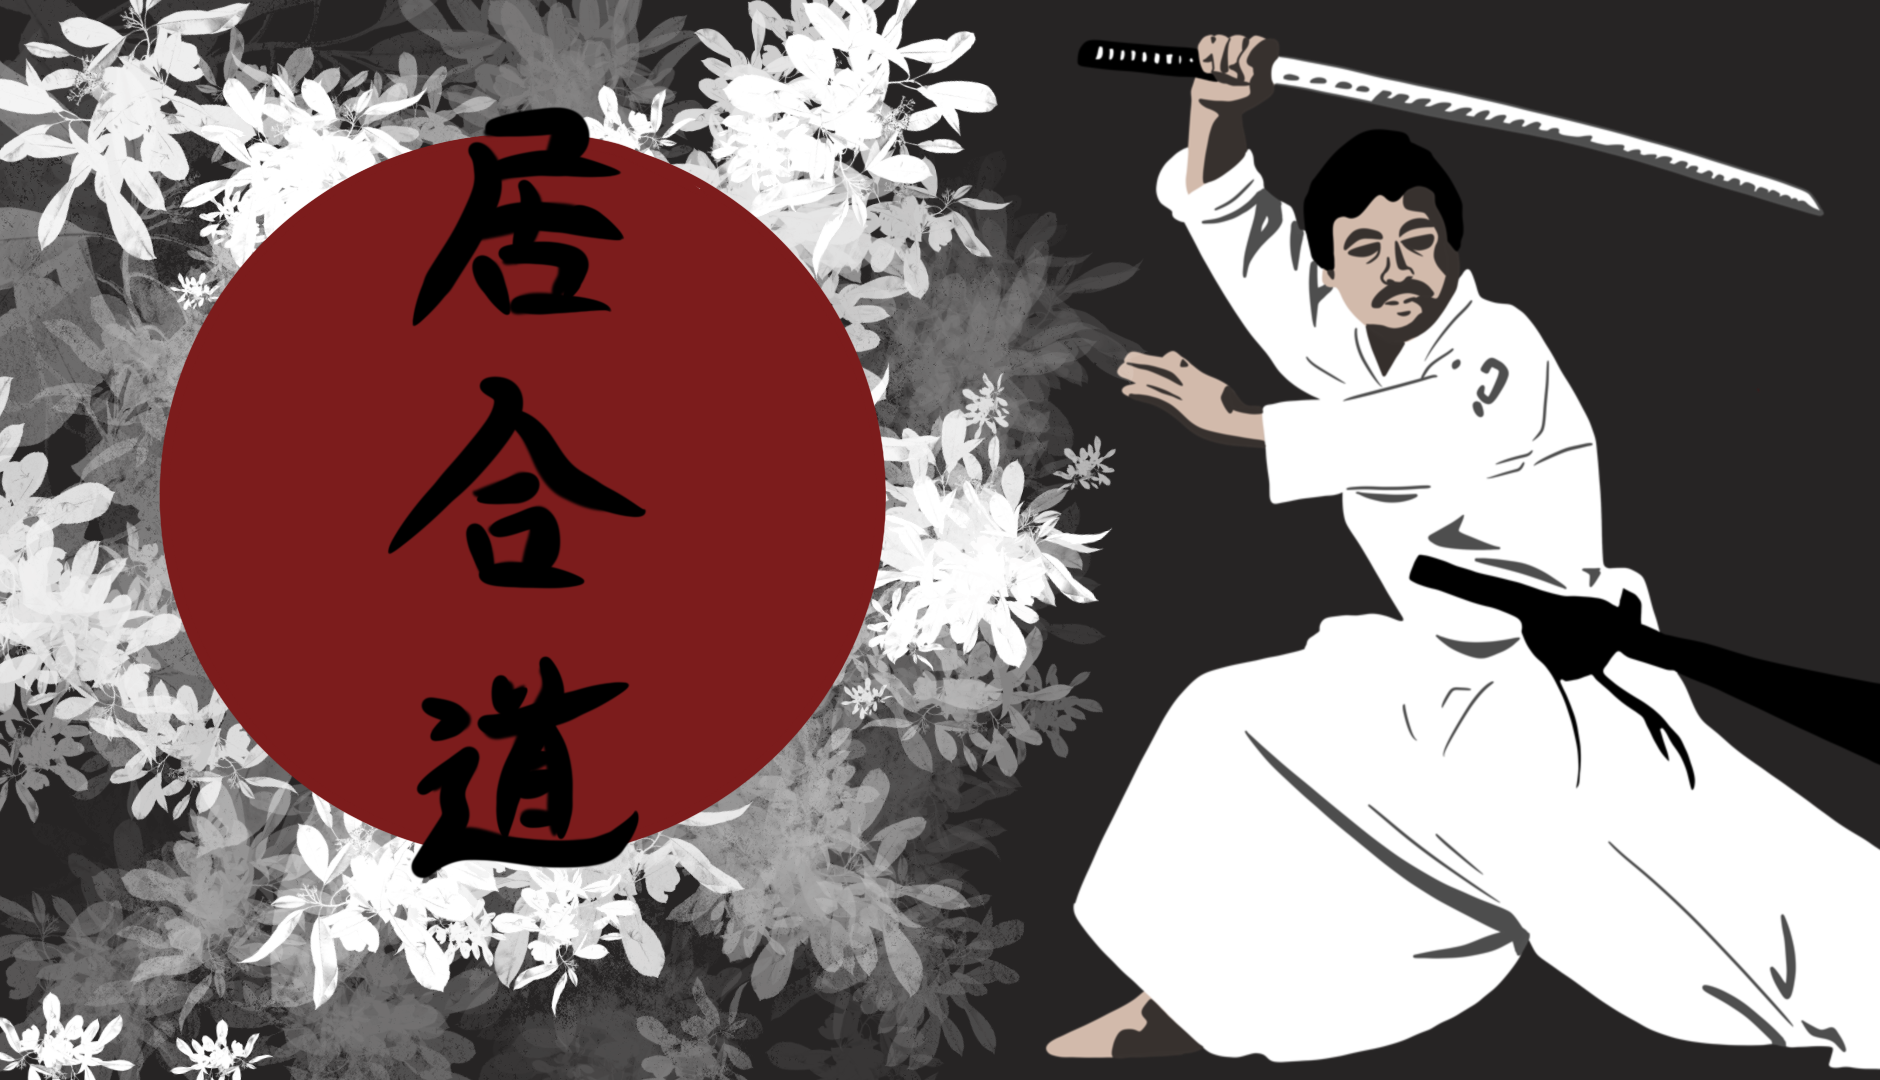 National Karate Kobudo Federation Karate Programs. Learn Iaido, the Japanese Traditional Drawing and Cutting of the Katana Sword online and test for certification.